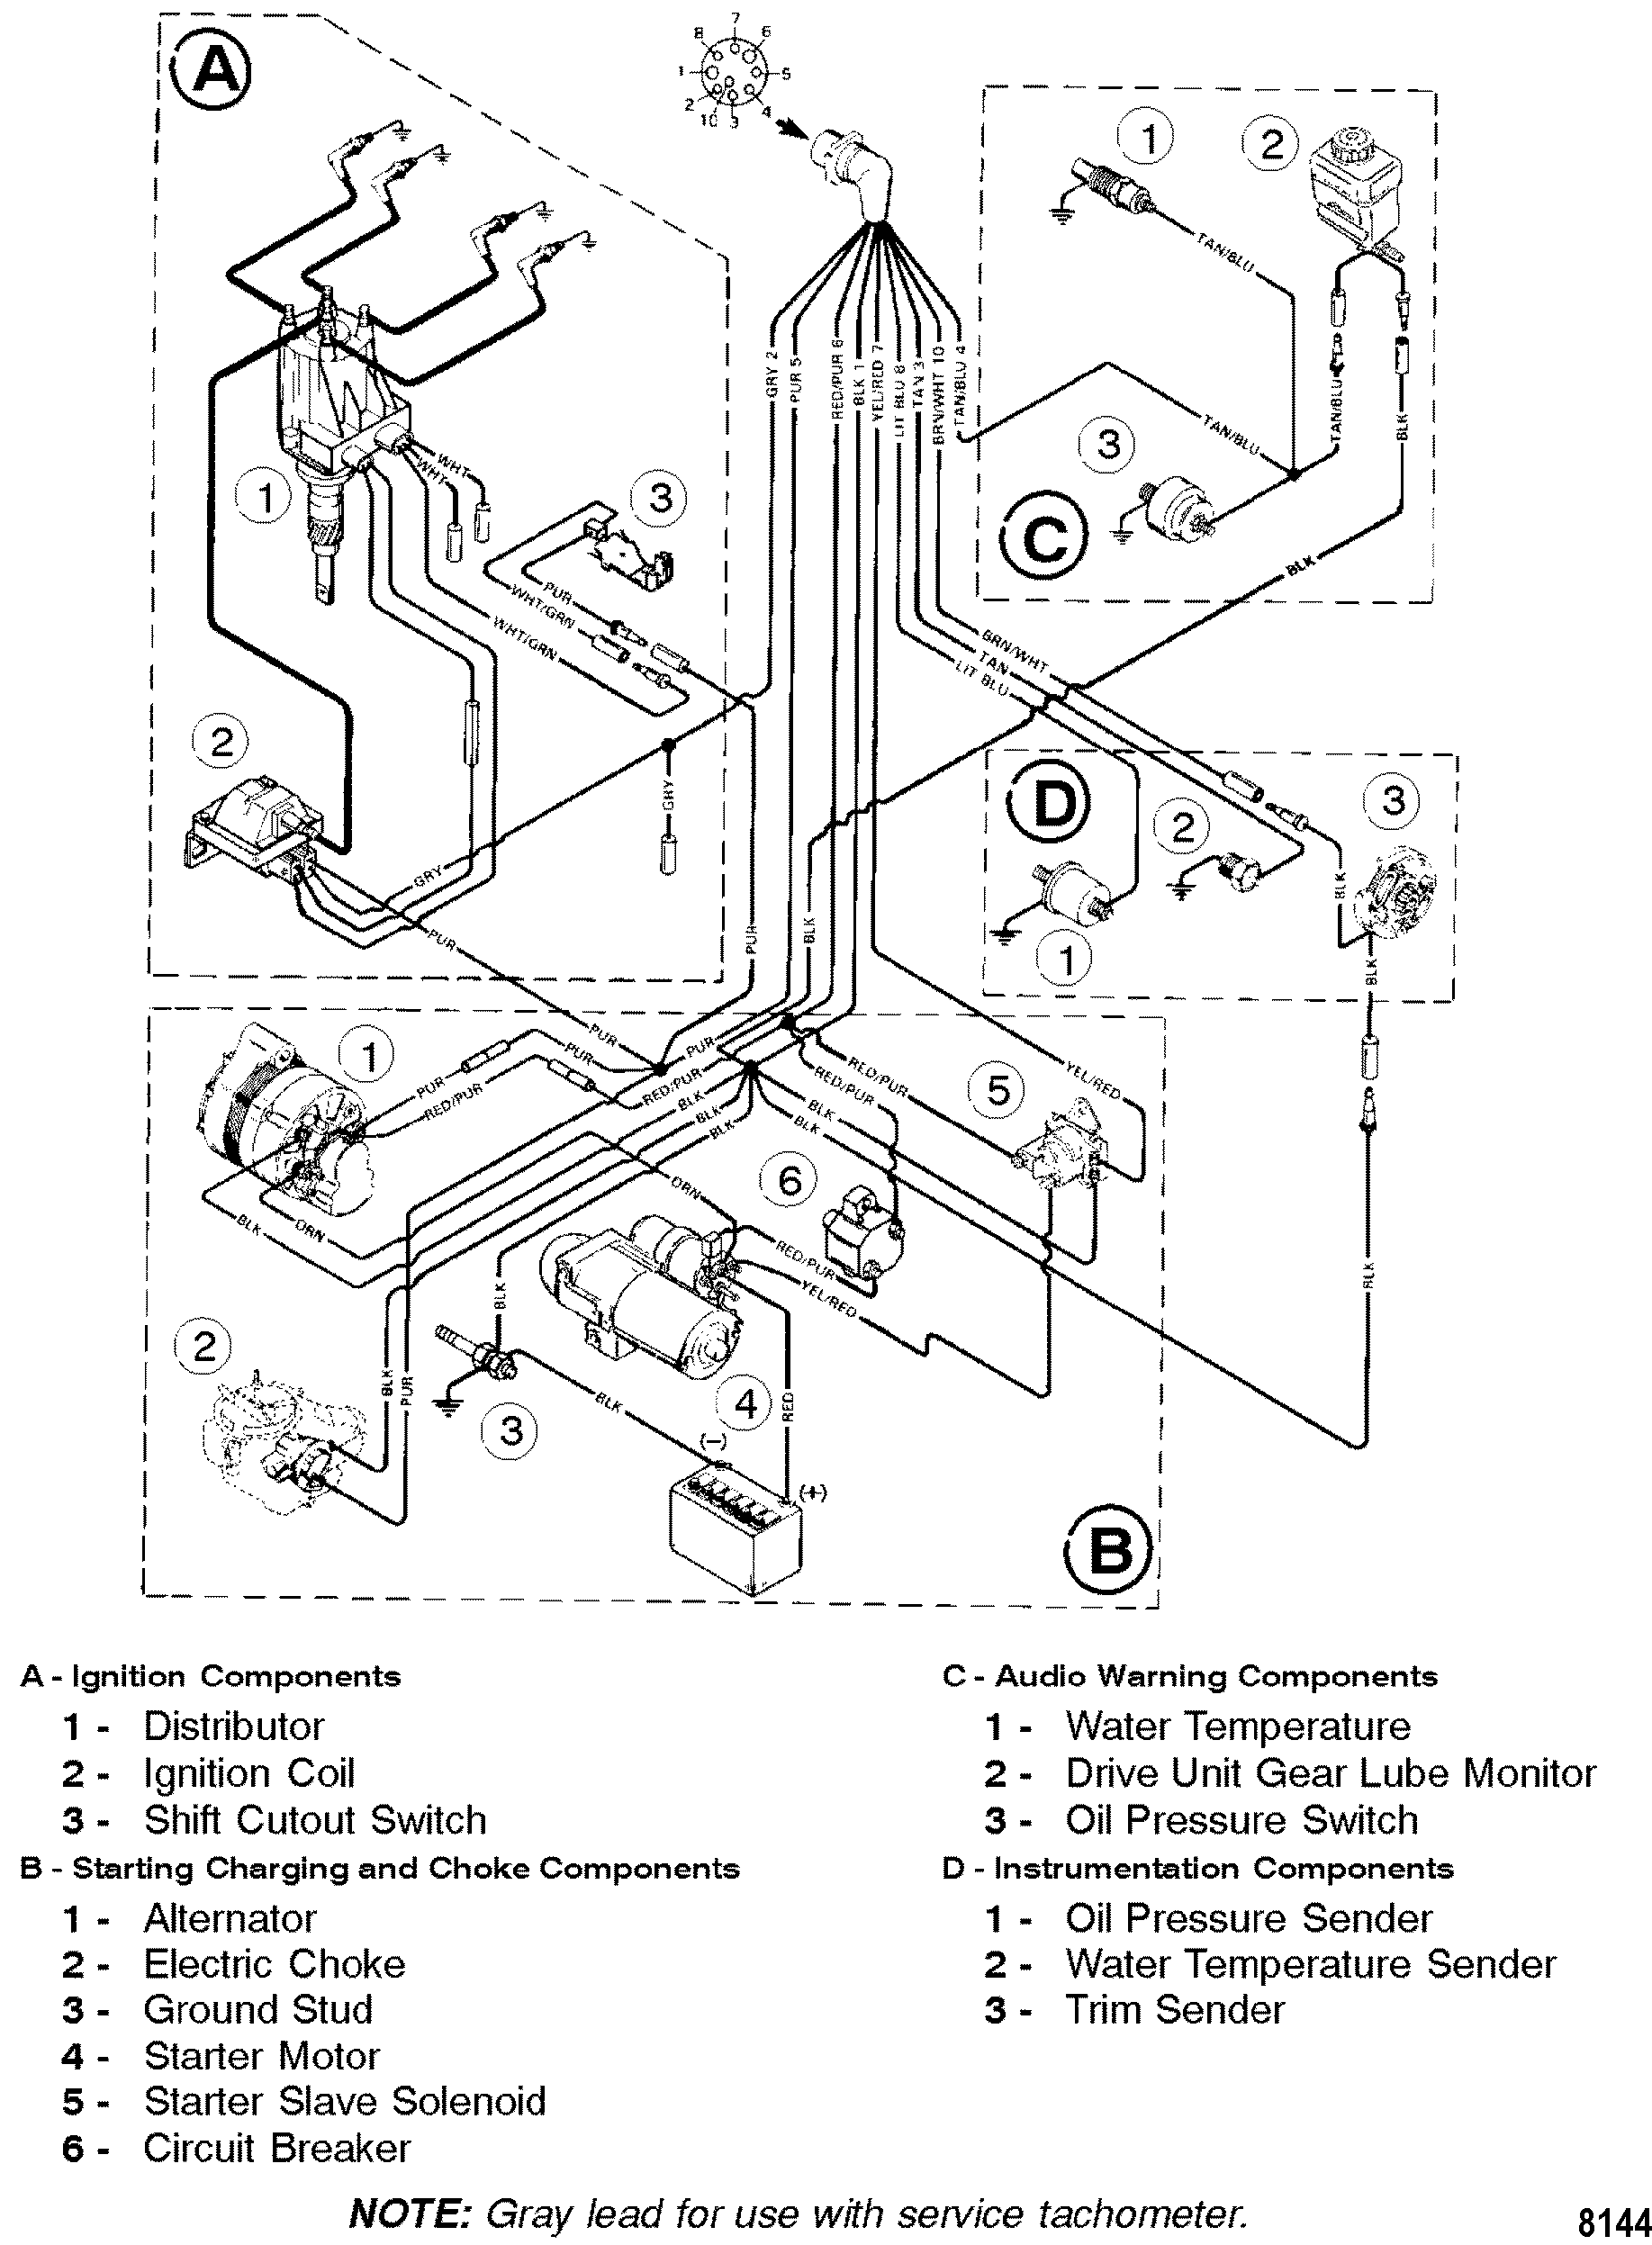 8144 wiring harness for mercruiser 3 0l alpha one Mercruiser 3.0 Firing Order Diagram at couponss.co